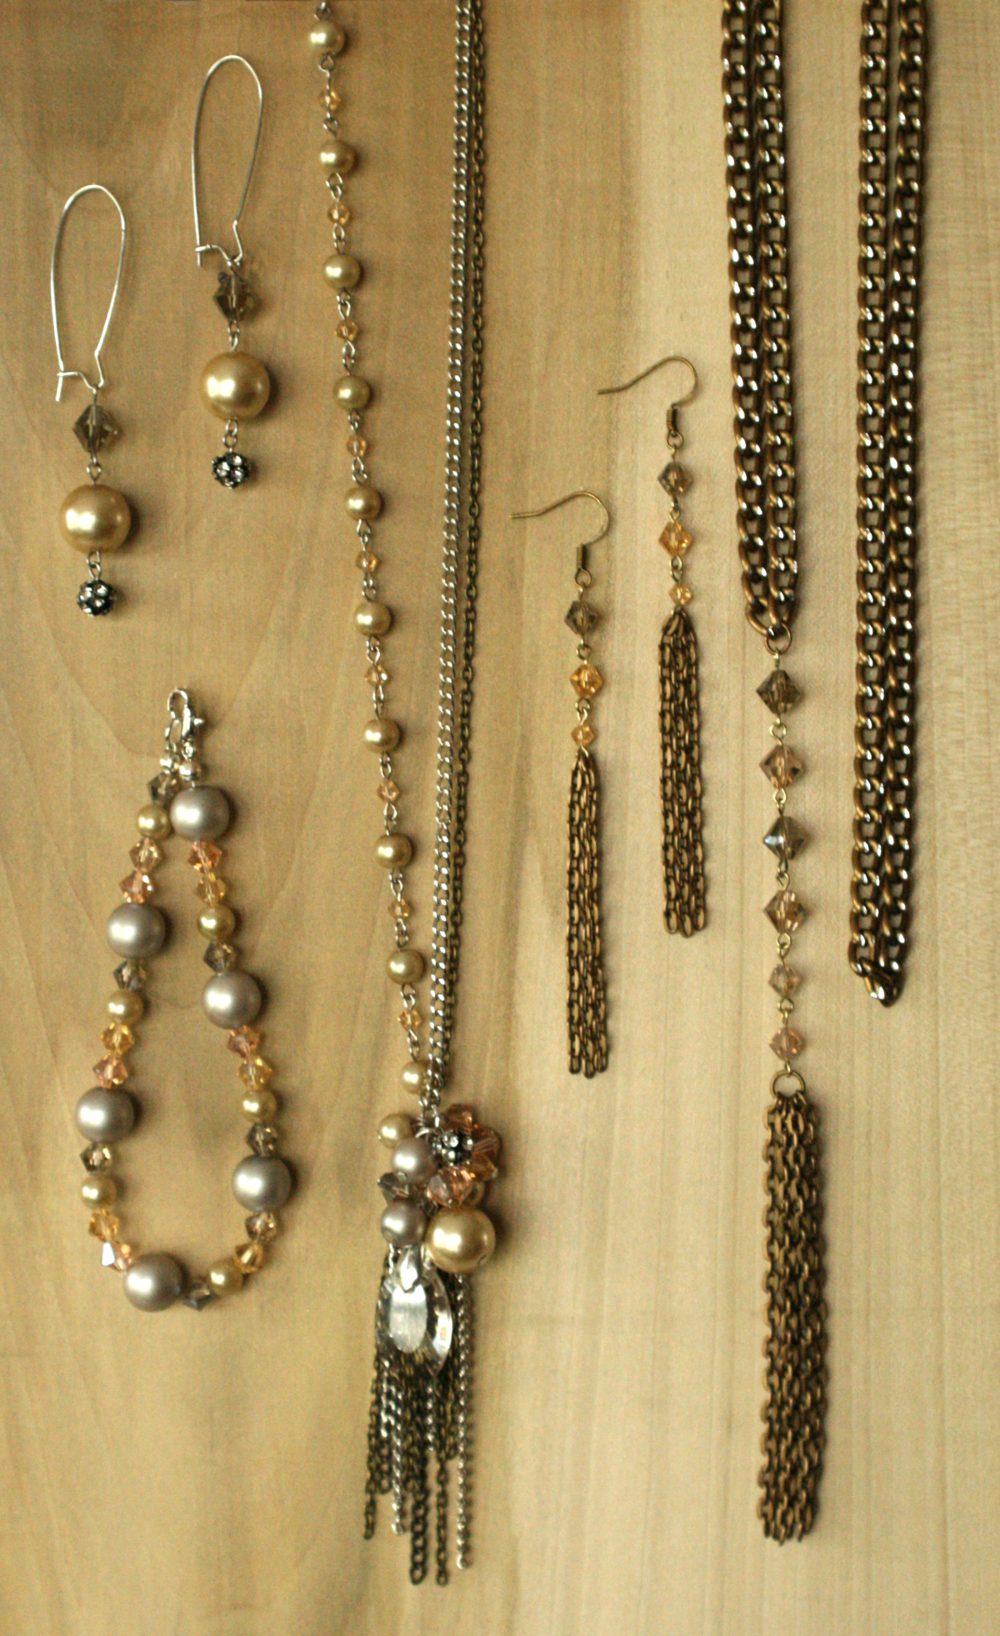 Jewelry_Chain_Kit.png